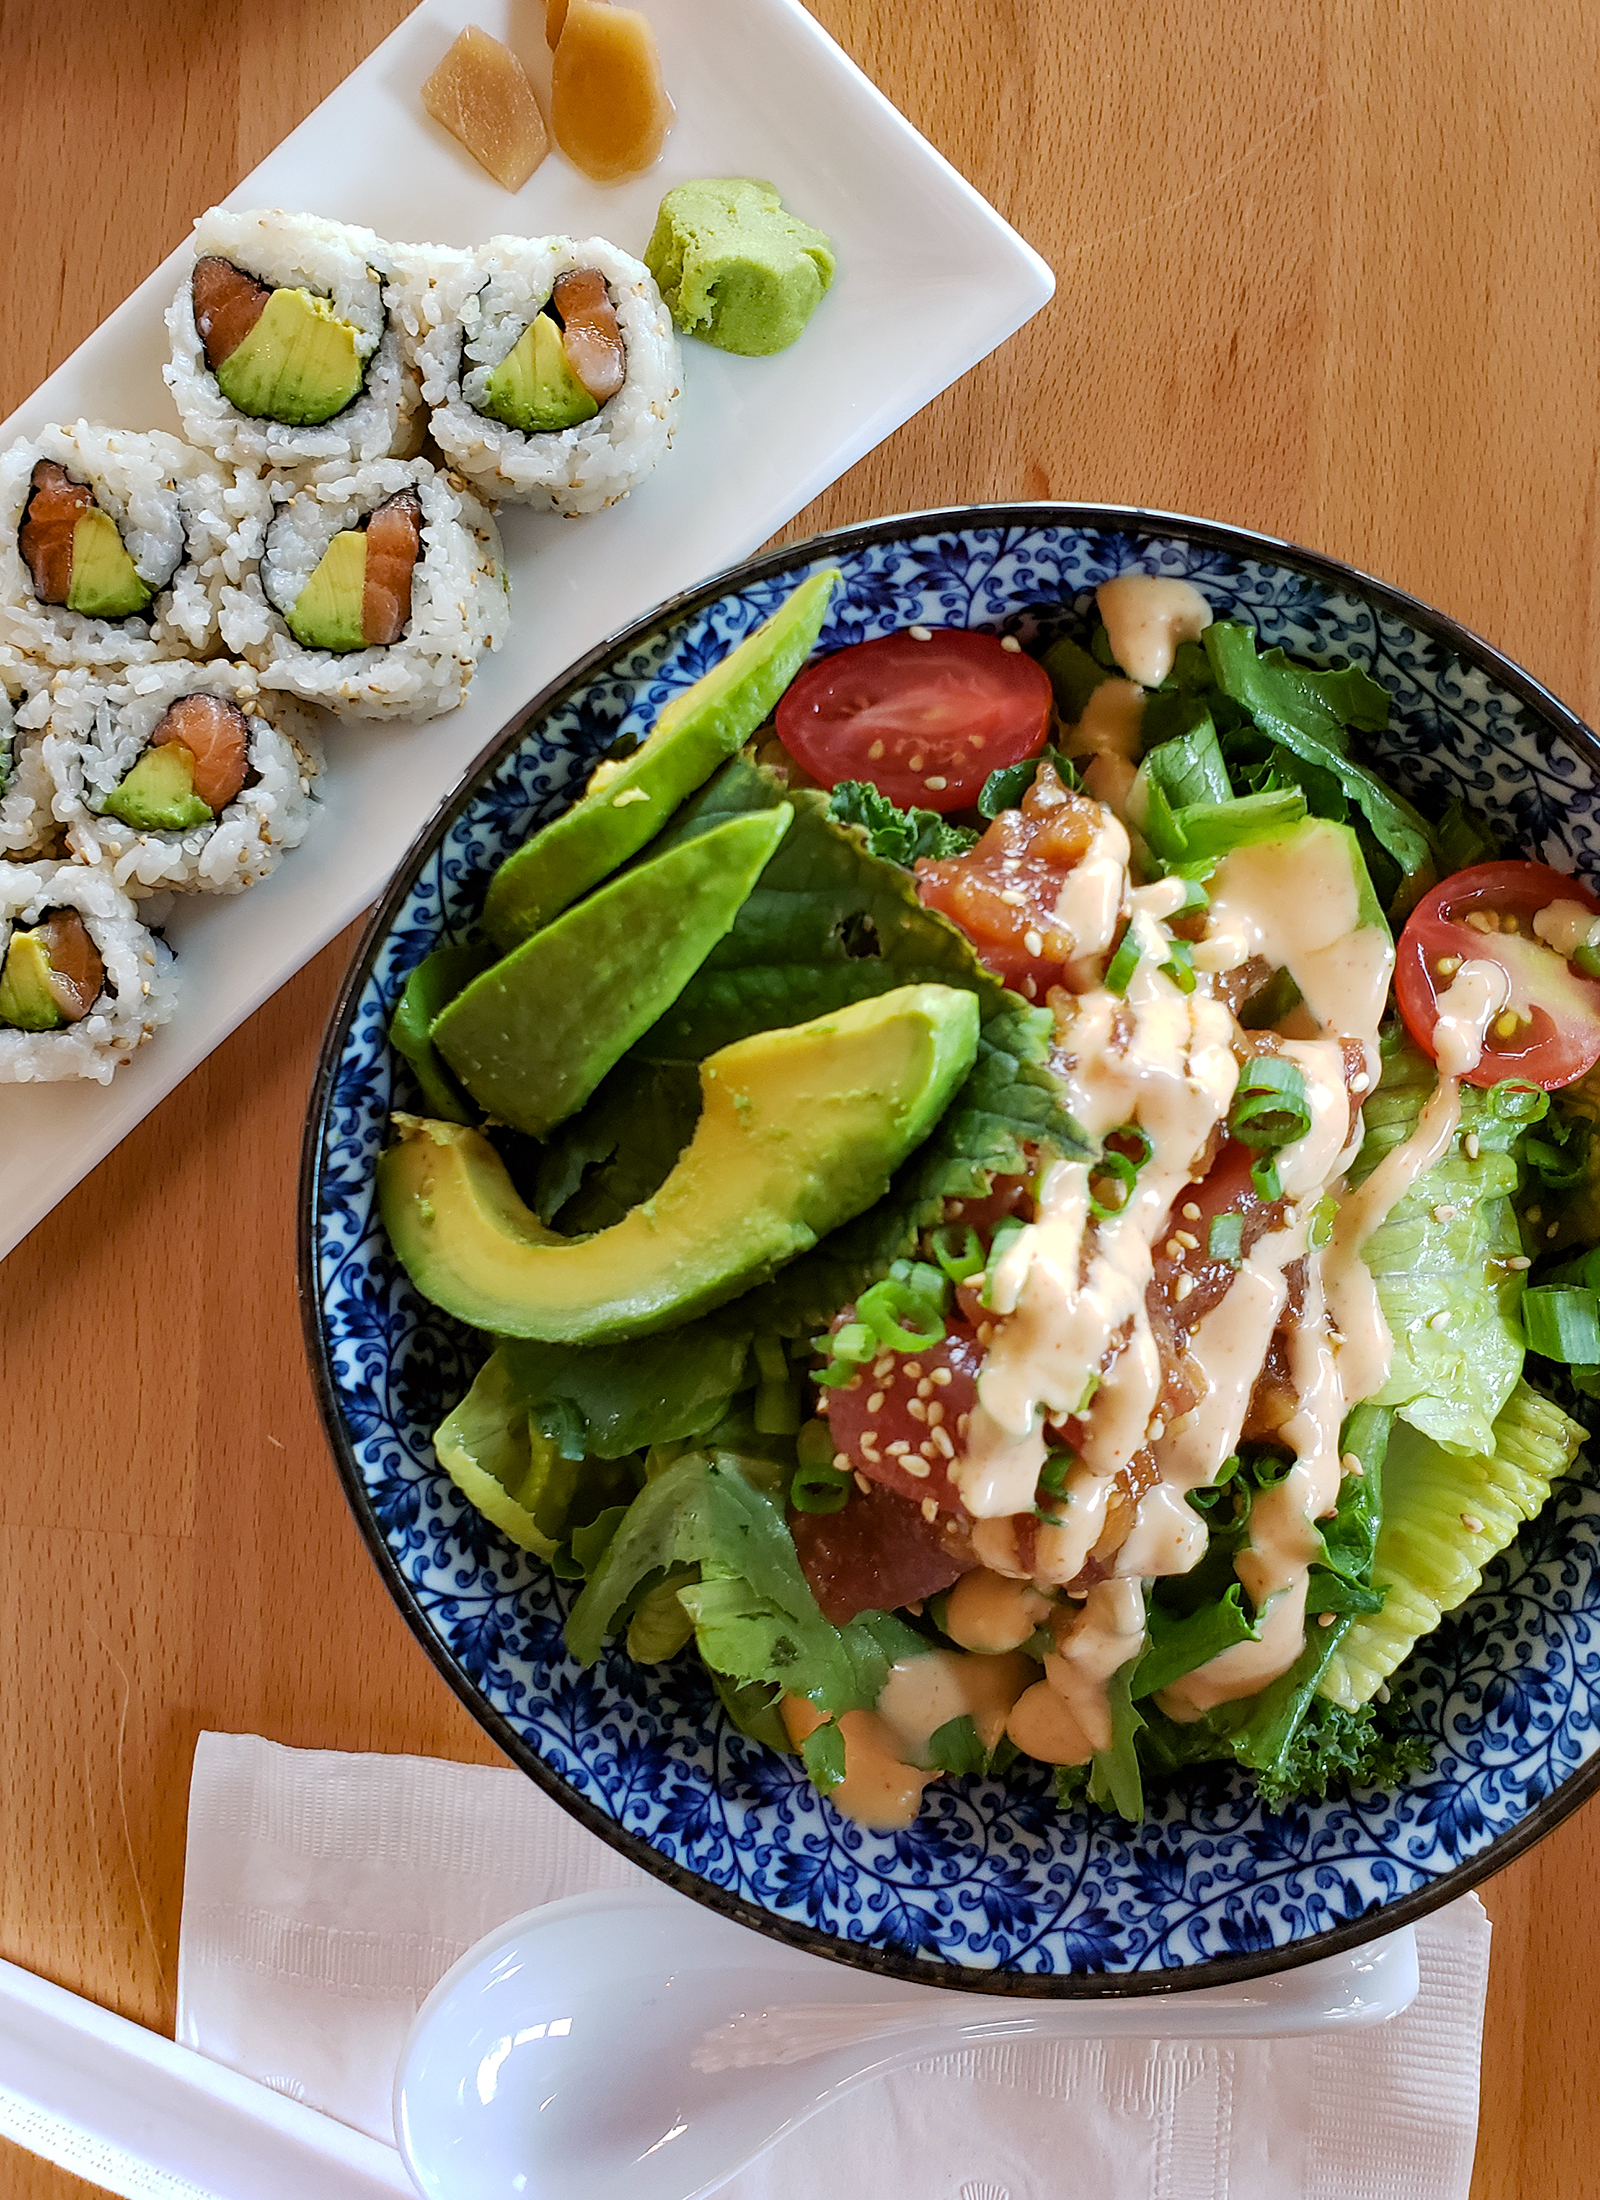 Poke Don, with wild-caught tuna, chili sesame soy, organic avocado, greens and veganaise at Raku Ramen and Rolls in Santa Rosa. Heather Irwin/PD